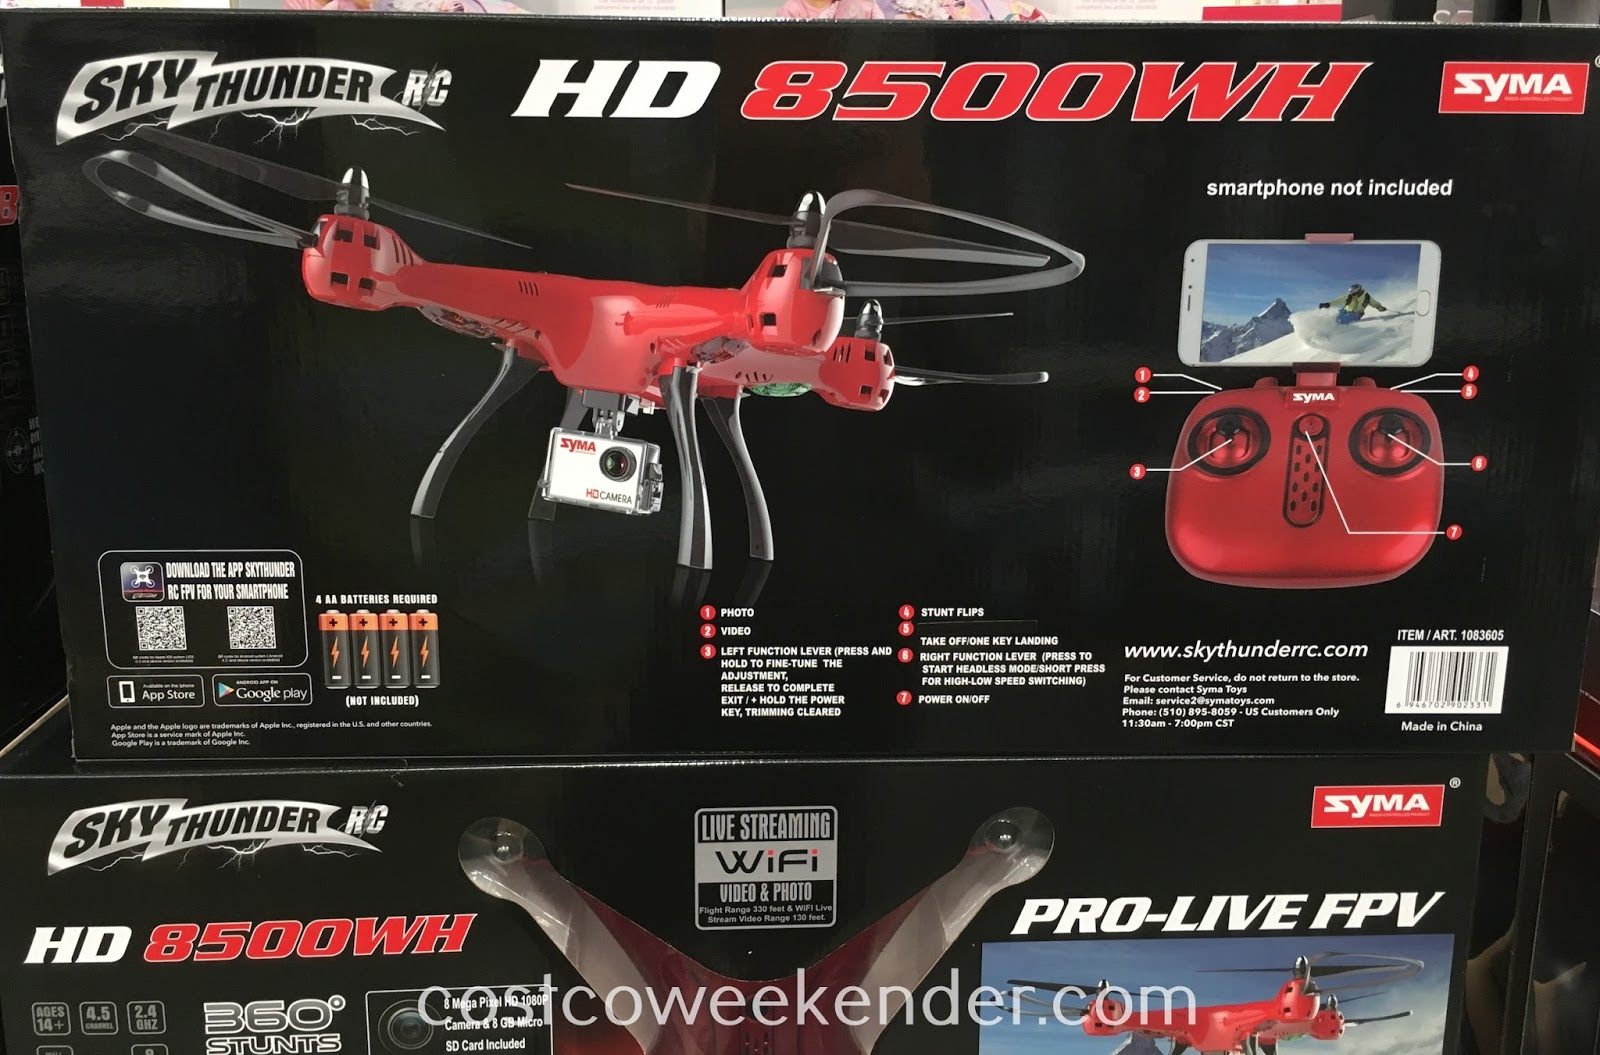 Costco 1083605 - Sky Thunder HD 8500WH Drone features live streaming hd camera with wifi